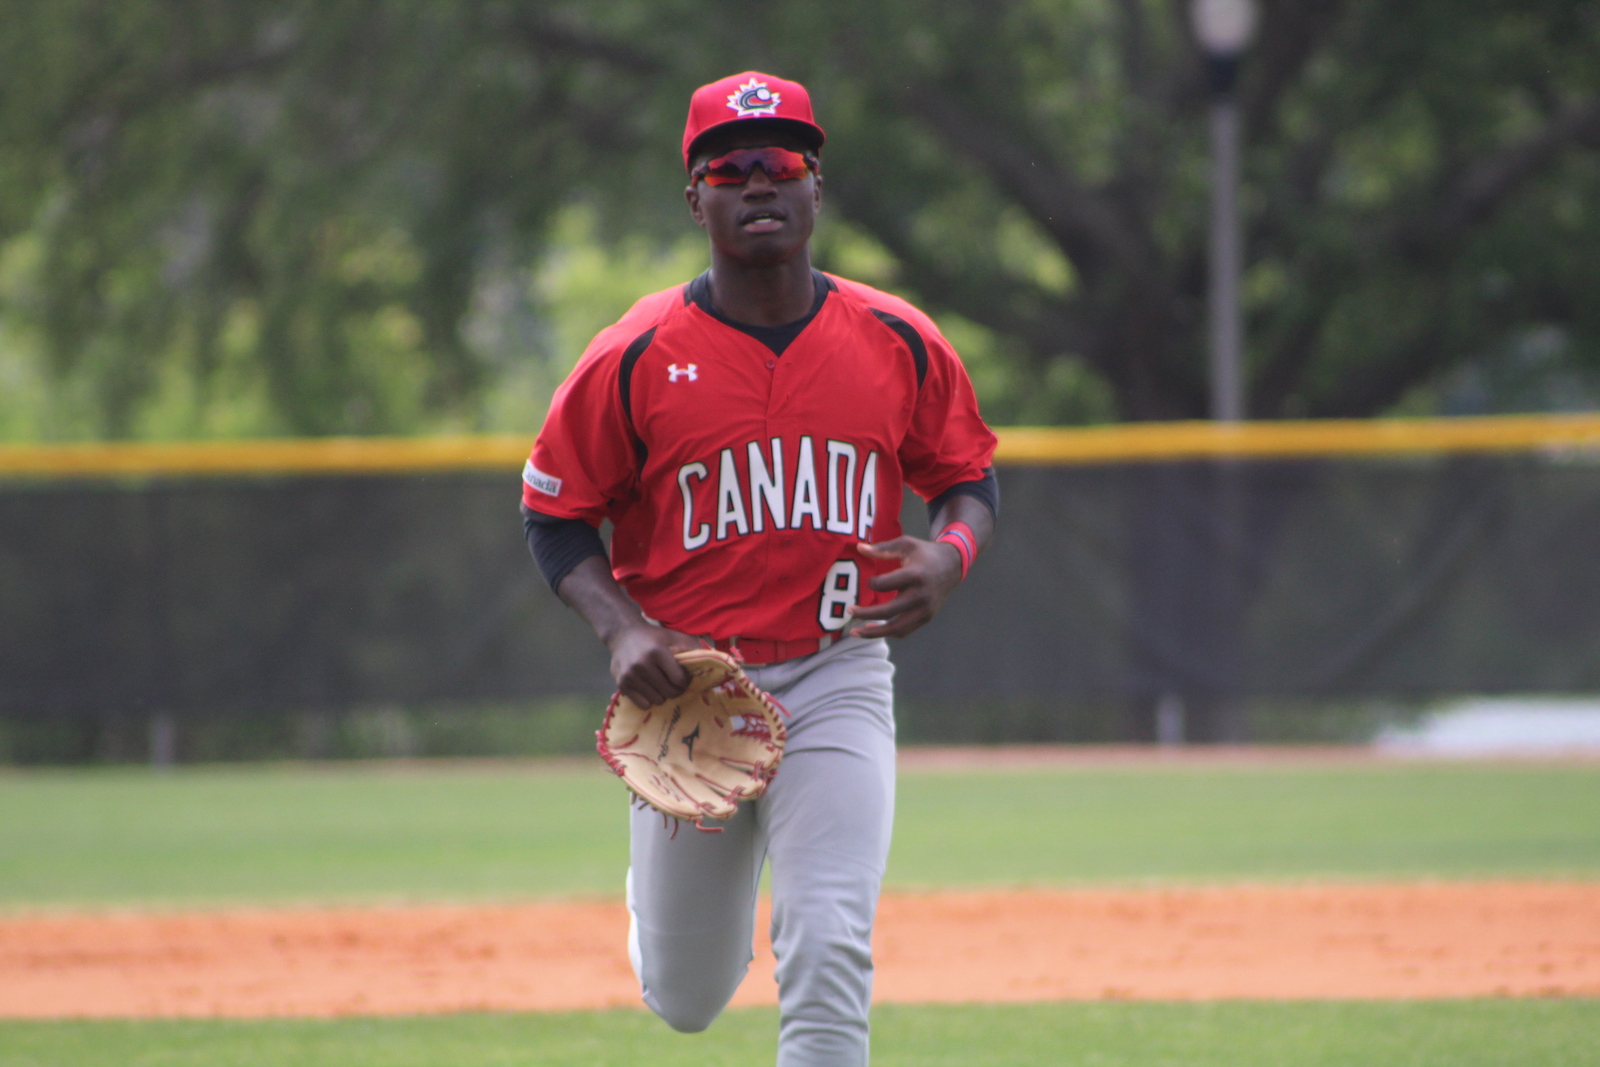 Ontario Blue Jays outfielder Dasan Brown (Oakville, Ont.) had a double and an RBI for the Junior National Team on Wednesday. Photo: Baseball Canada